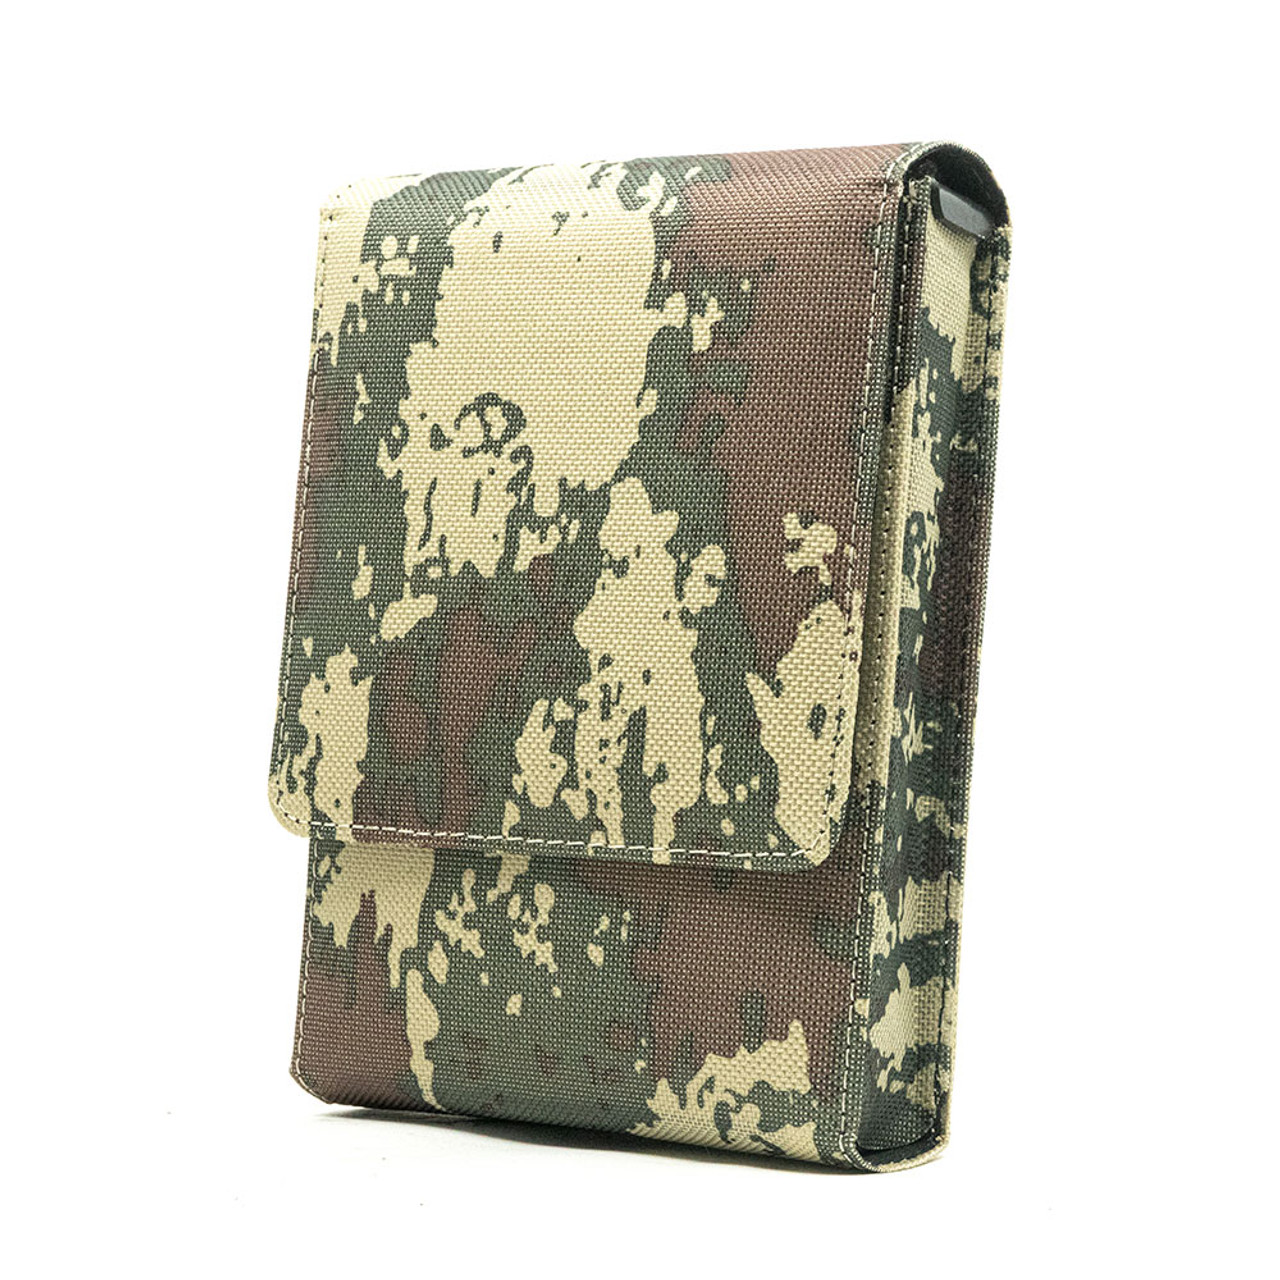 Walther PPK/S Camouflage Nylon Series Holster